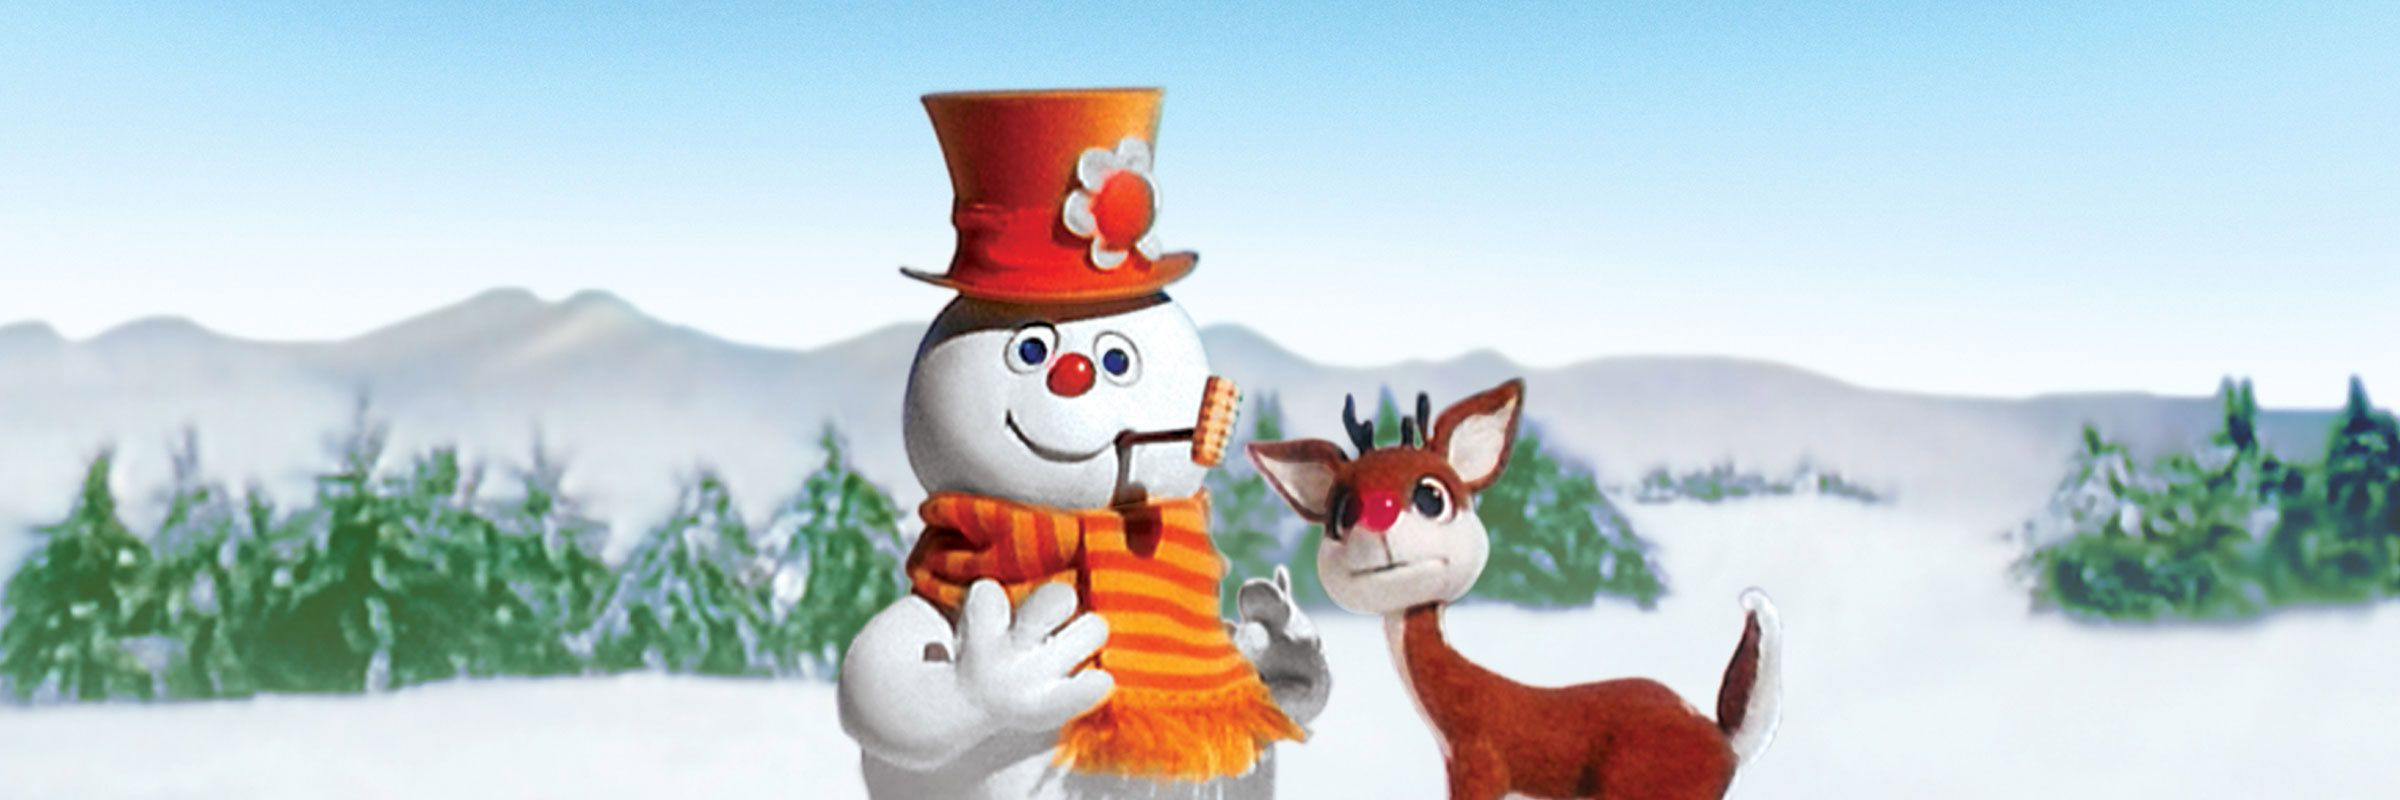 Rudolph And Frostys Christmas In July.Rudolph And Frosty S Christmas In July Full Movie Movies